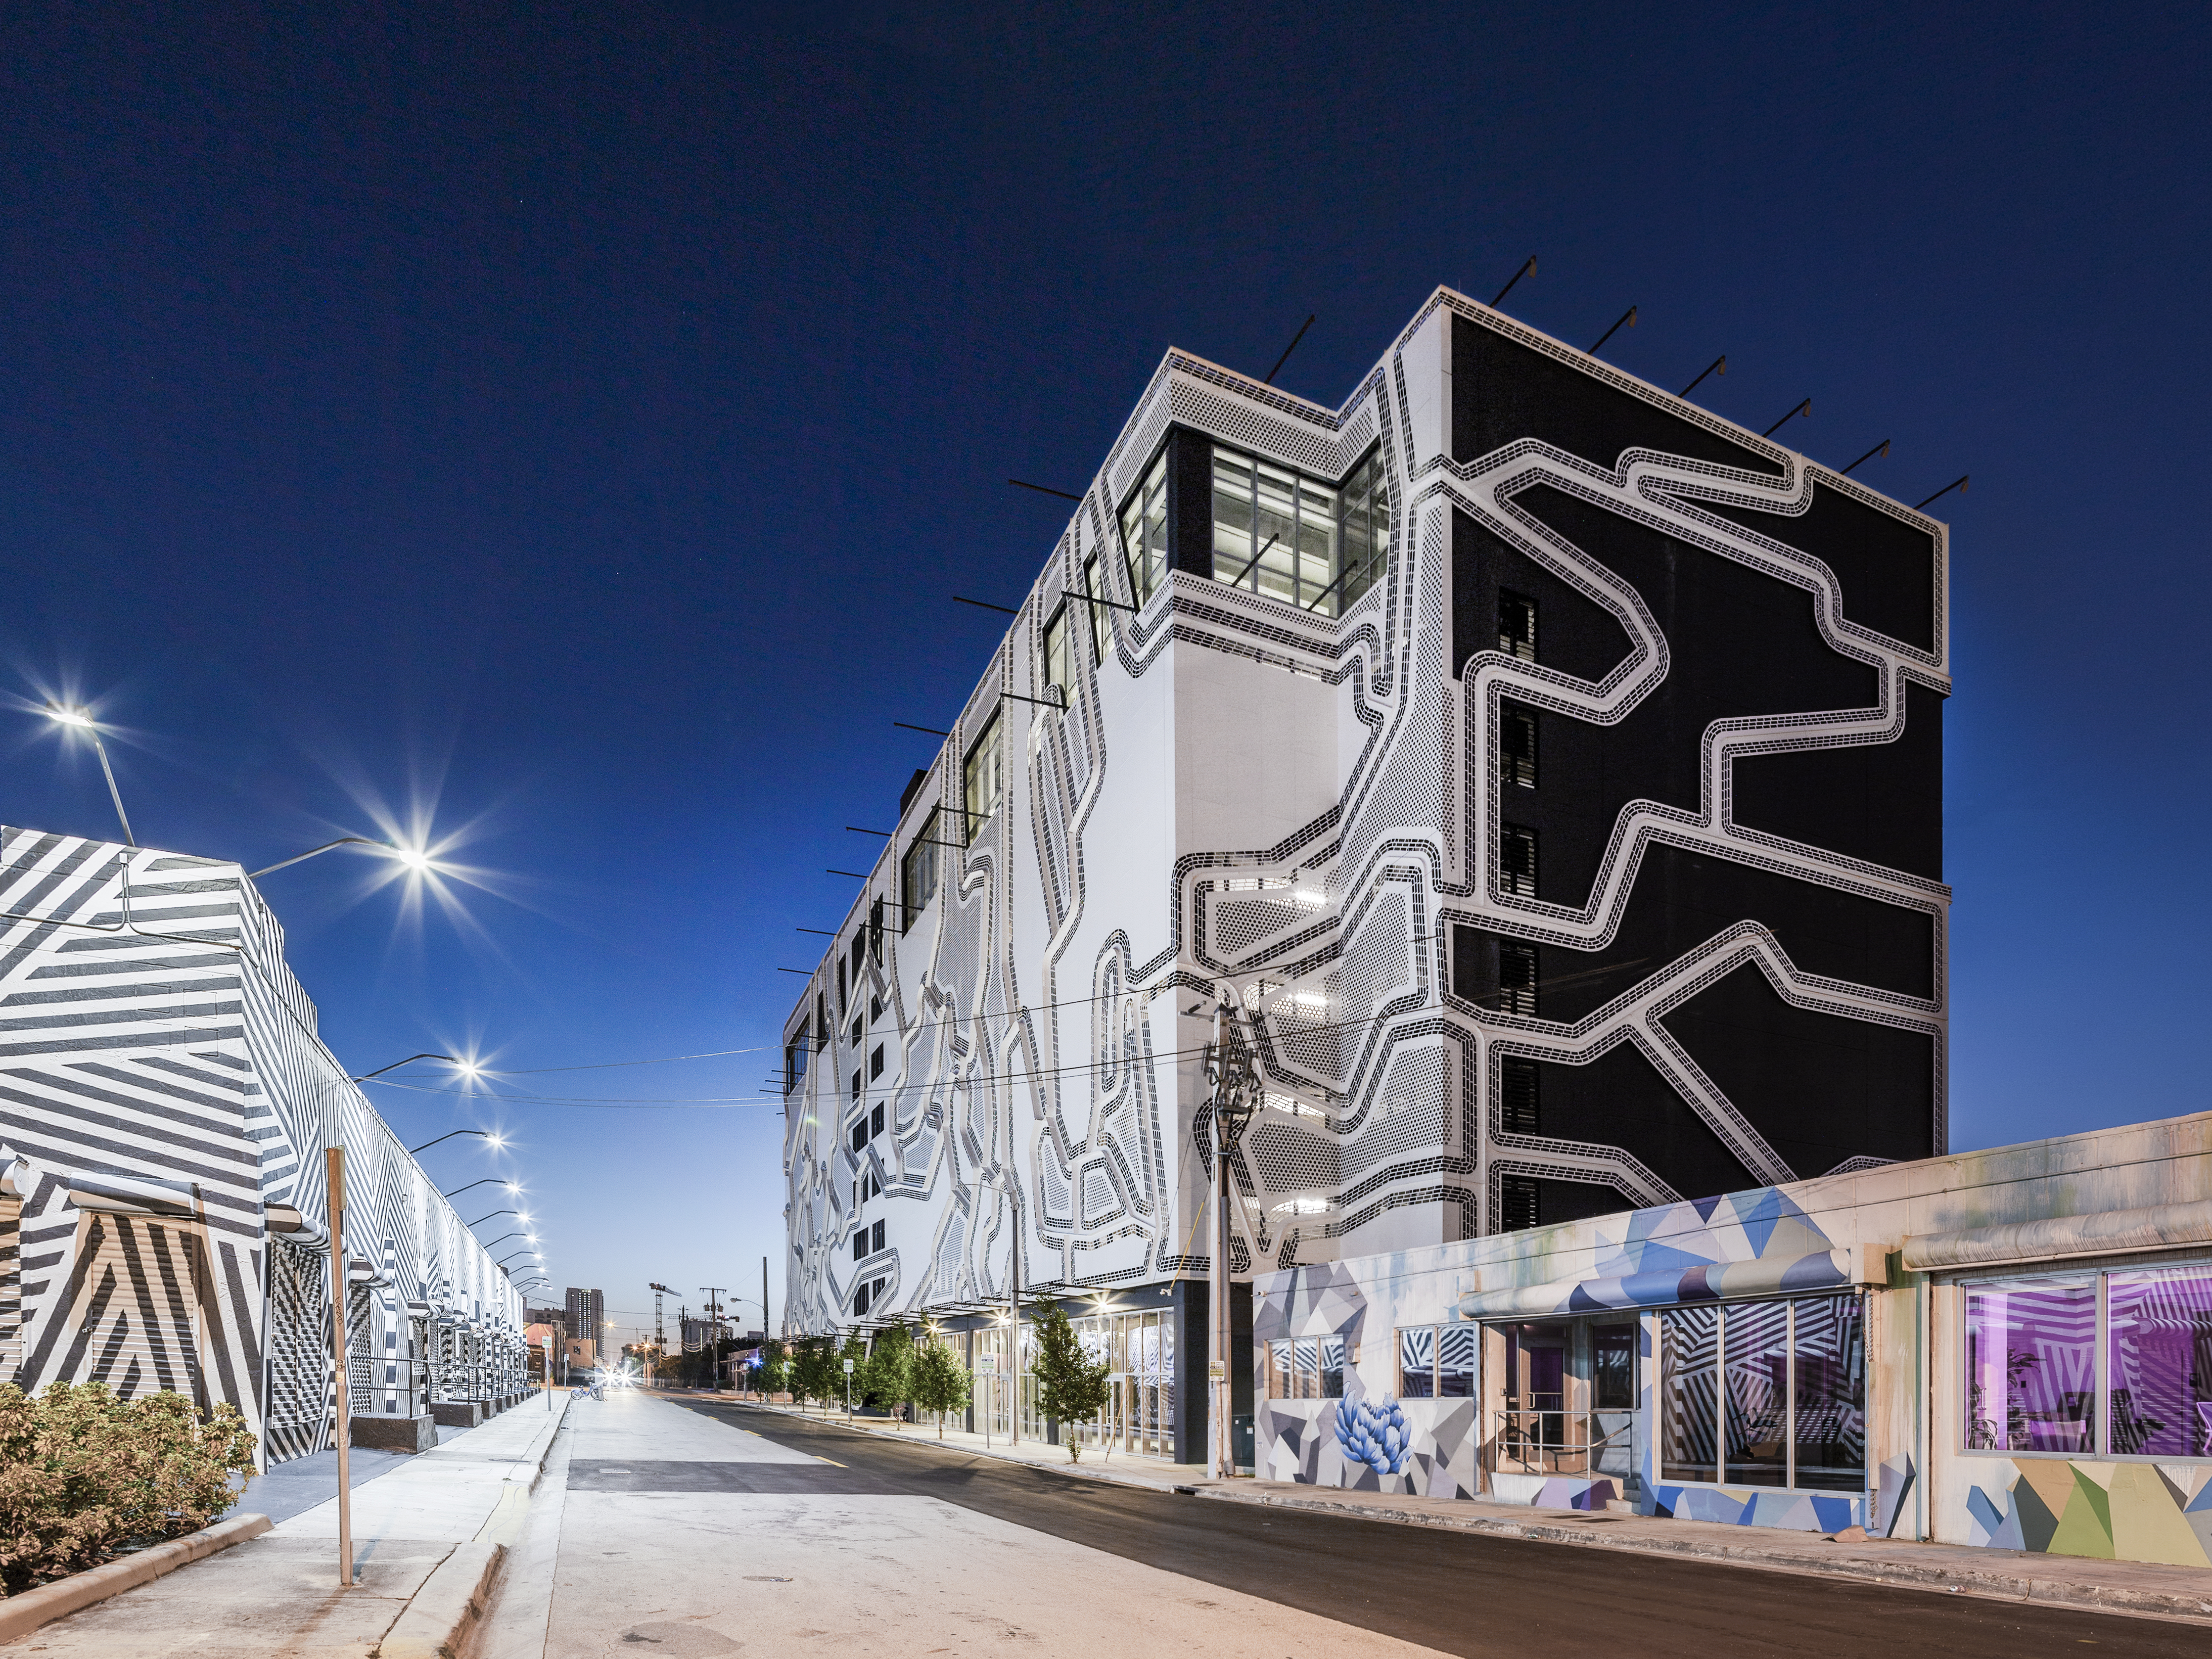 ZAHNER ENGINEERED AND FABRICATED OVER 54,000 SQUARE FEET OF FACADE PANELS.